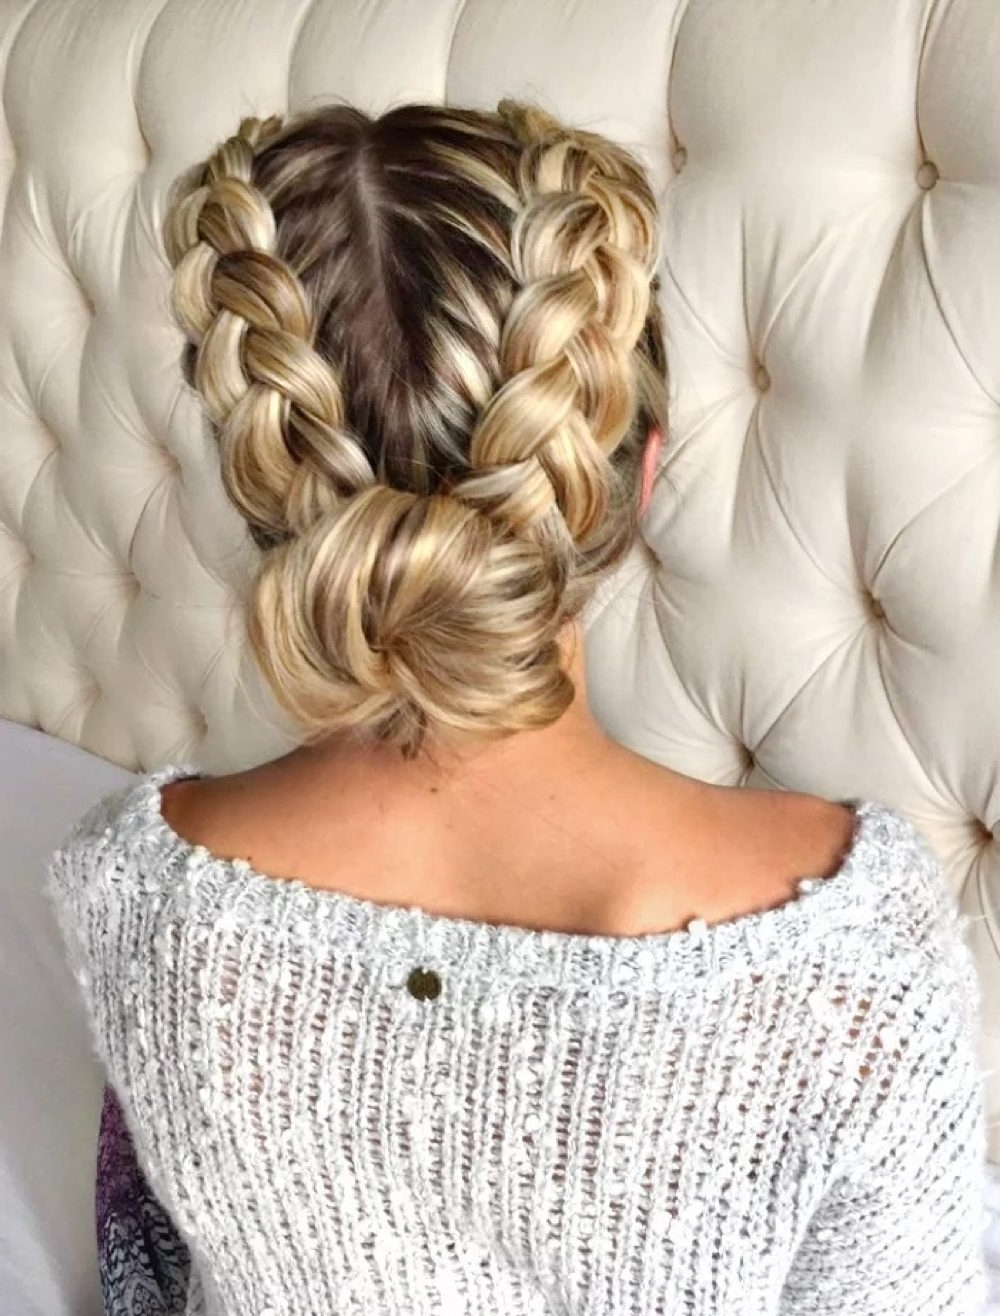 28 Gorgeous Braided Updo Ideas For 2018 Regarding Well Known Low Side French Braid Hairstyles (View 9 of 15)